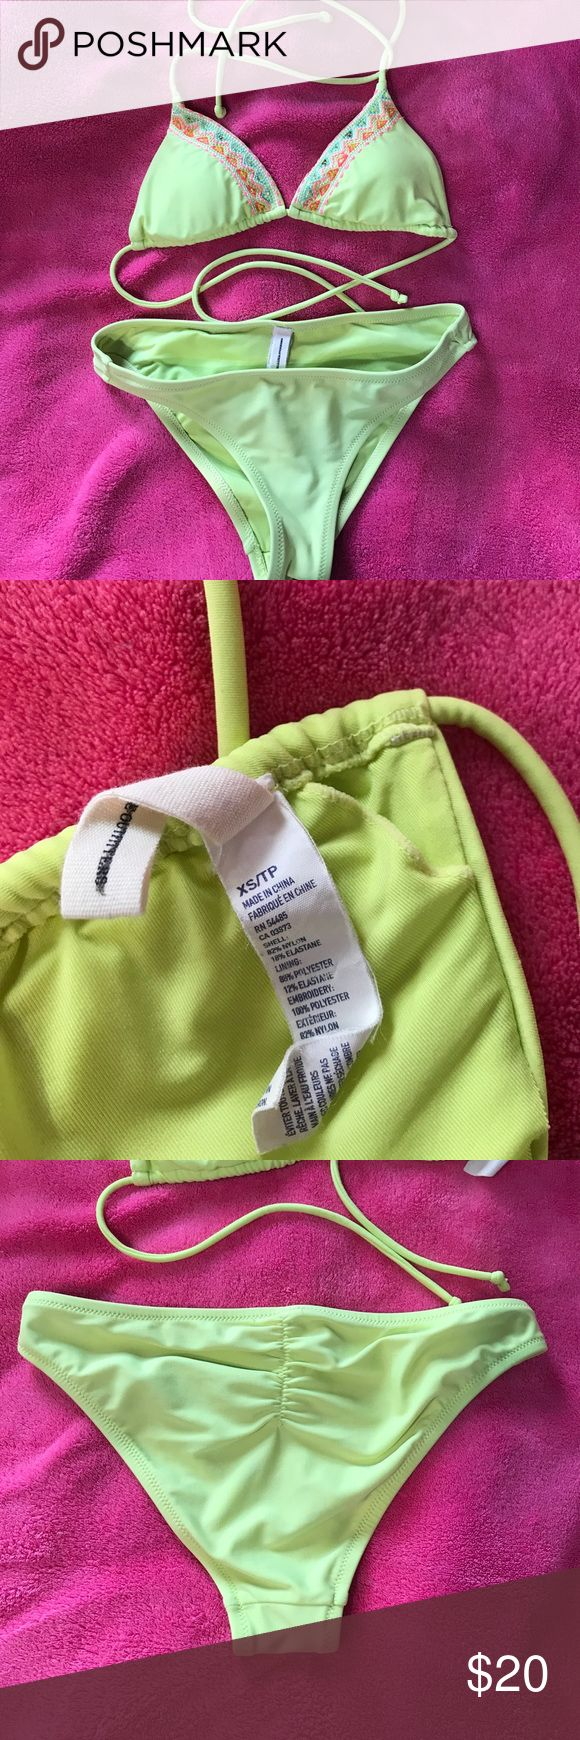 American Eagle swimsuit Neon yellow XS swimsuit. Purchased from TJ Maxx. Never been worn. No tags American Eagle Outfitters Swim Bikinis